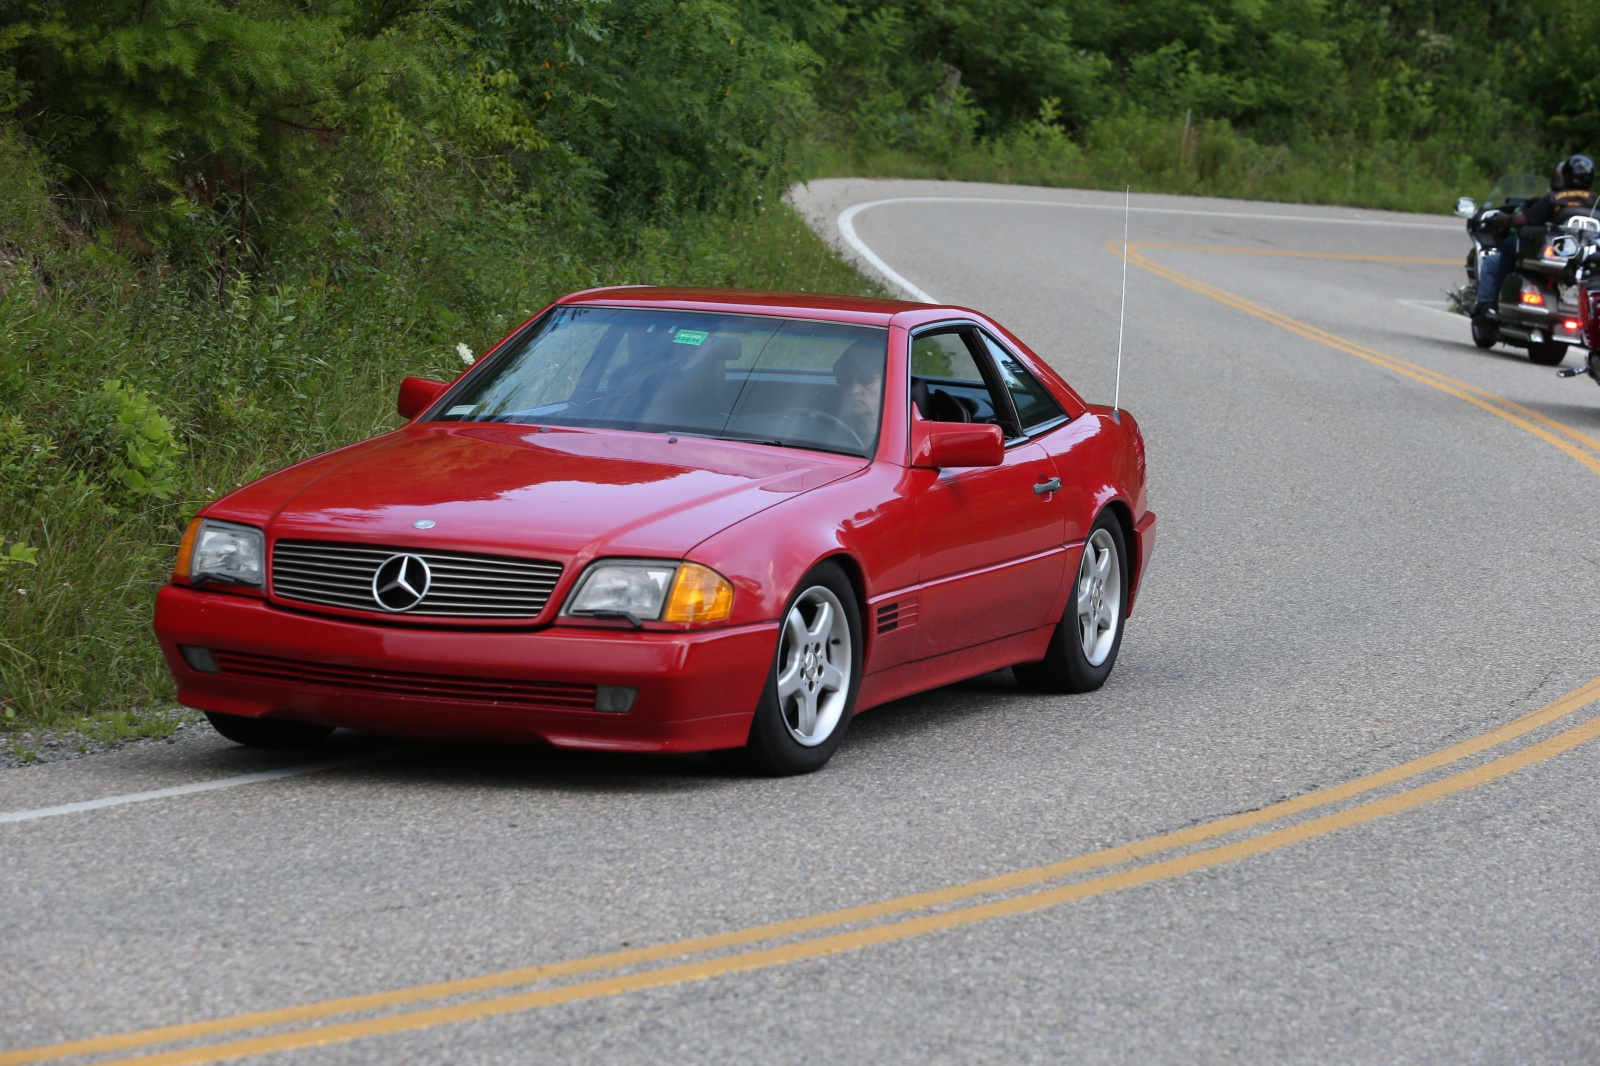 2287390 129Slayer 2 mercedes benz wiring harness problems 1993 1995 technical q on 1995 Mercedes SL500 Convertible at bayanpartner.co